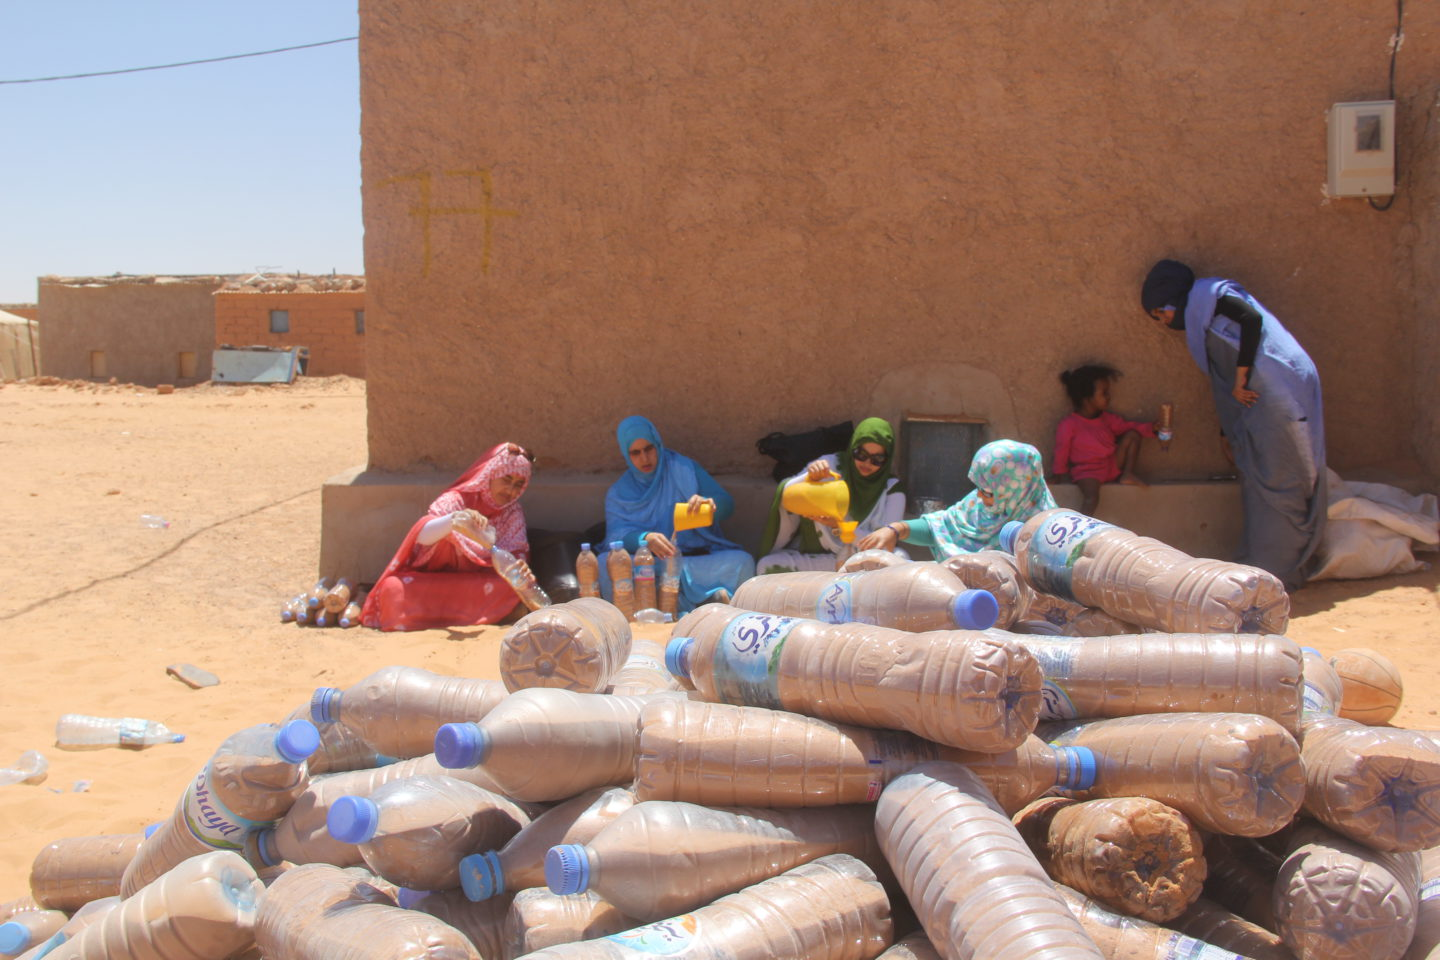 The story of a young refugee who builds houses from plastic bottles |The Switchers